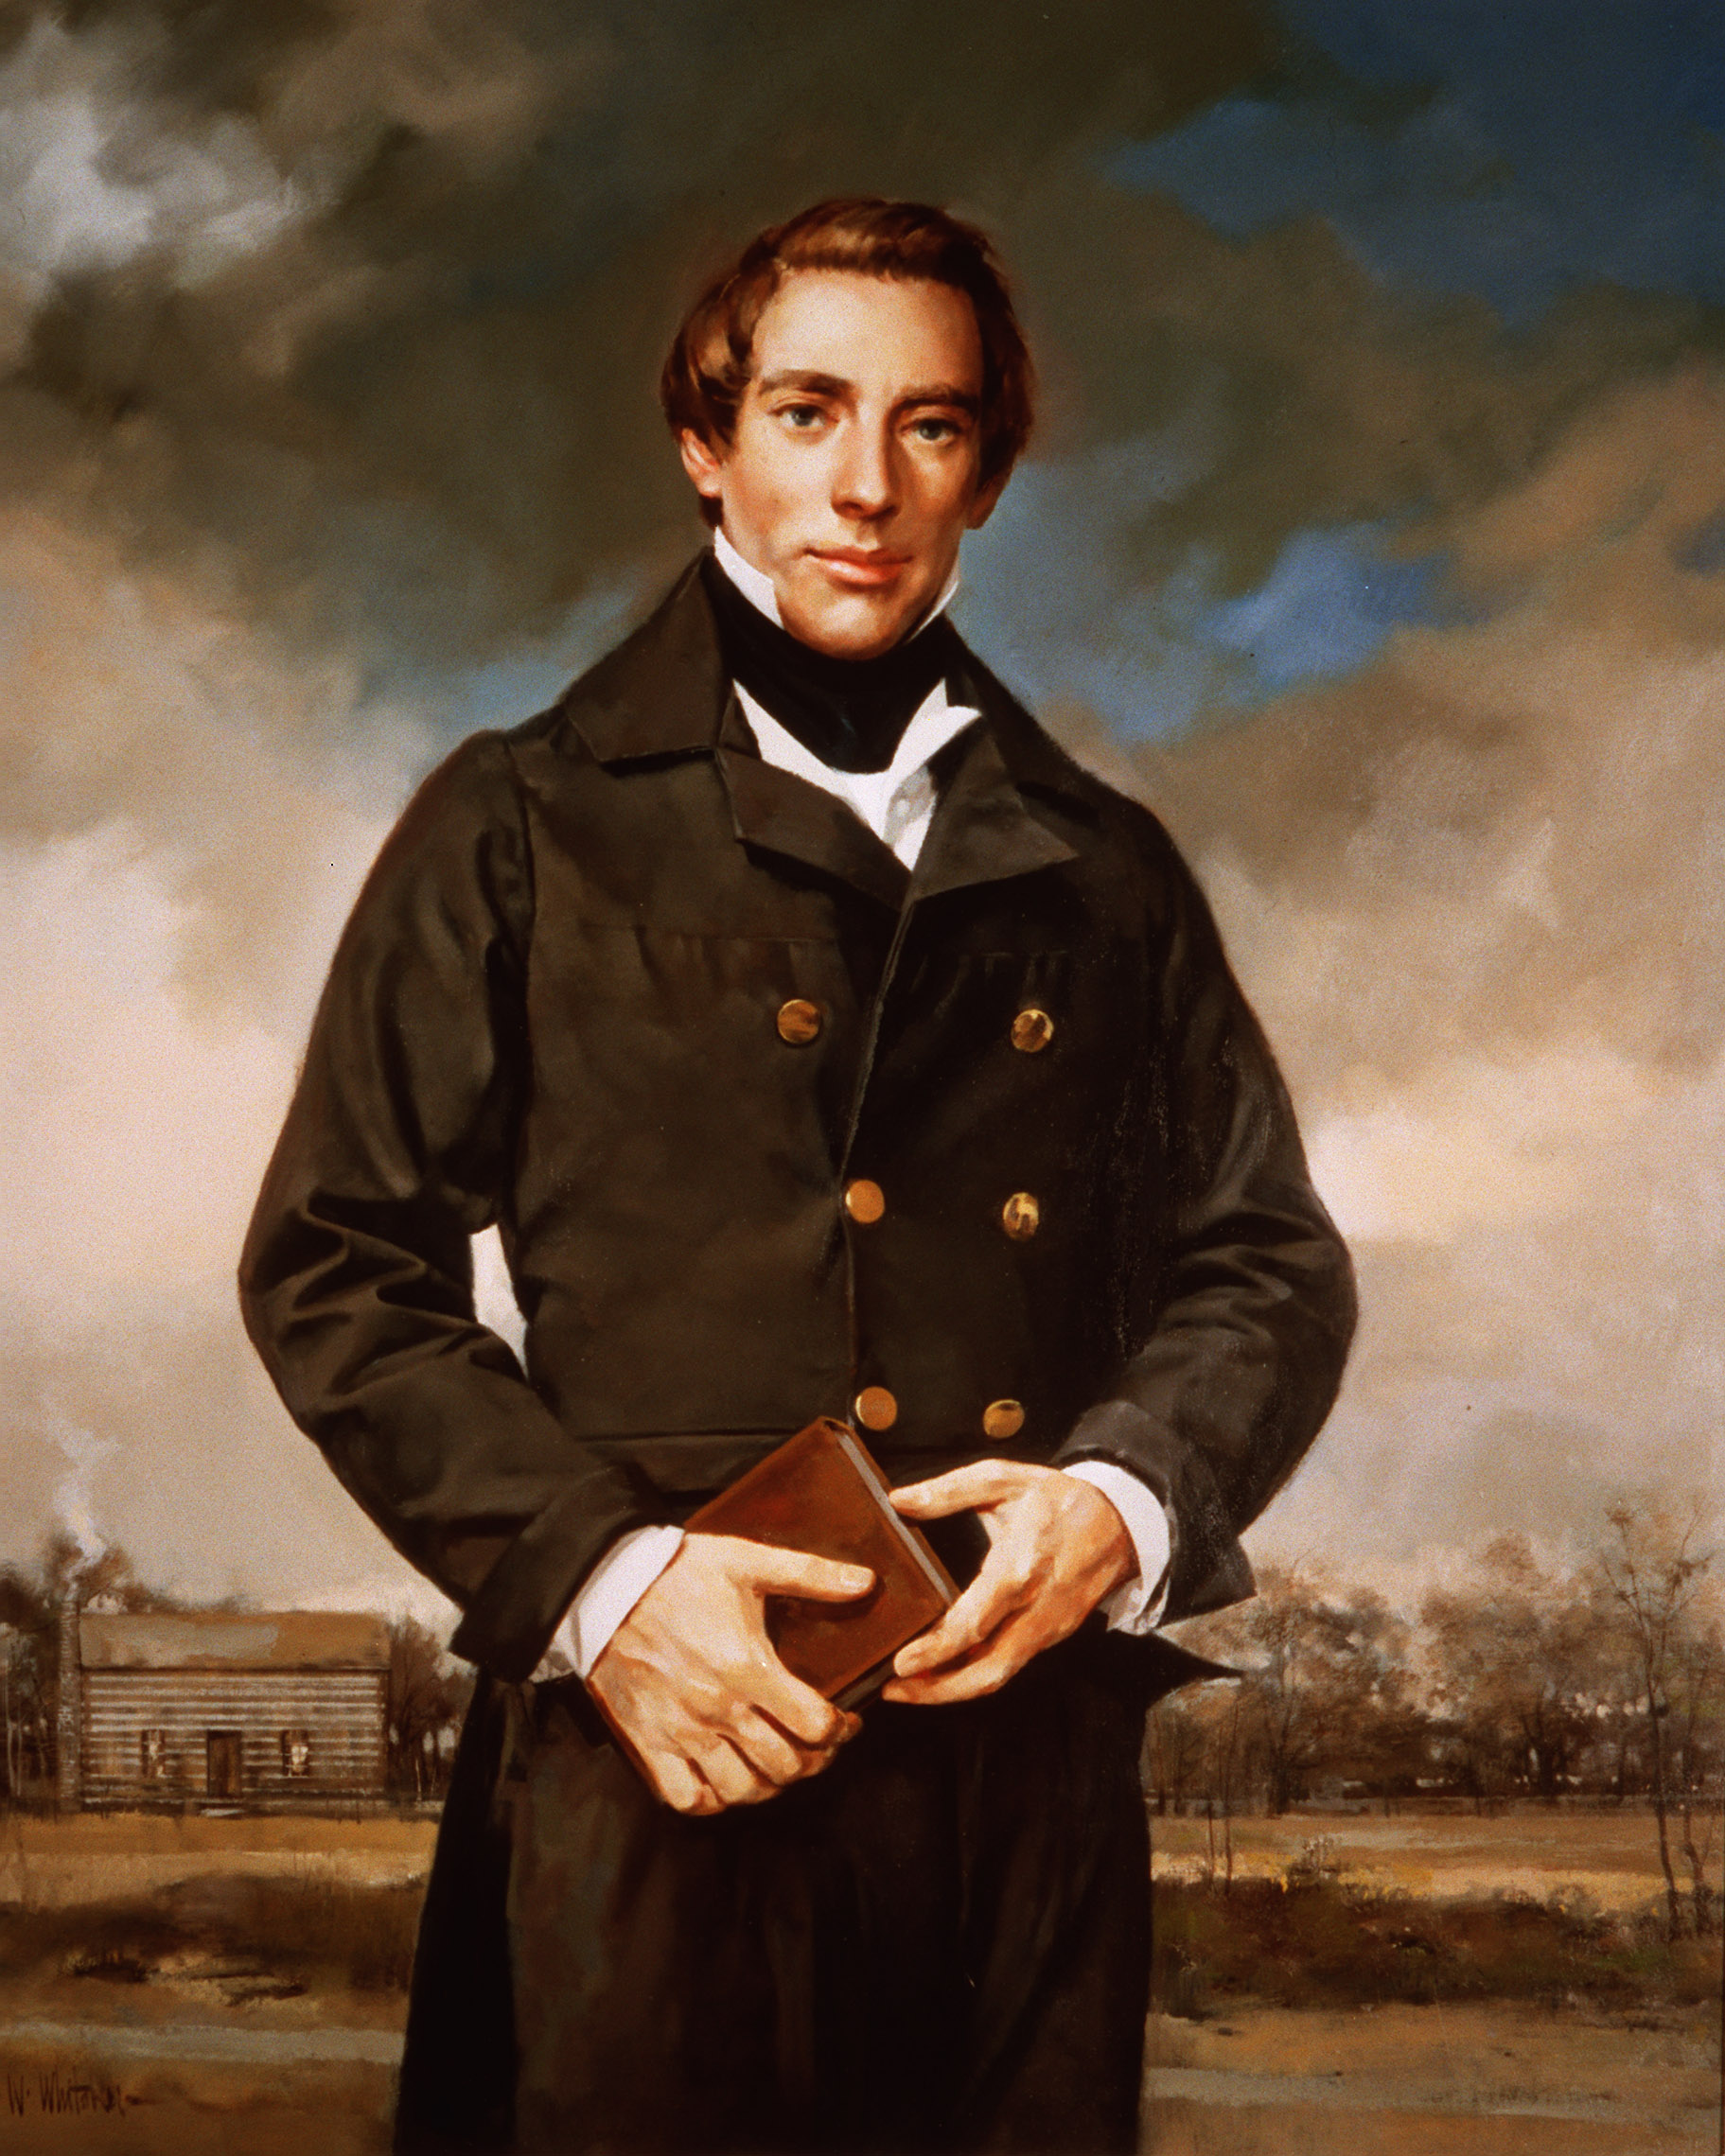 Joseph Smith painting by William Whitaker. Deseret Morning News owned painting. (Submission date: 12/27/2004)